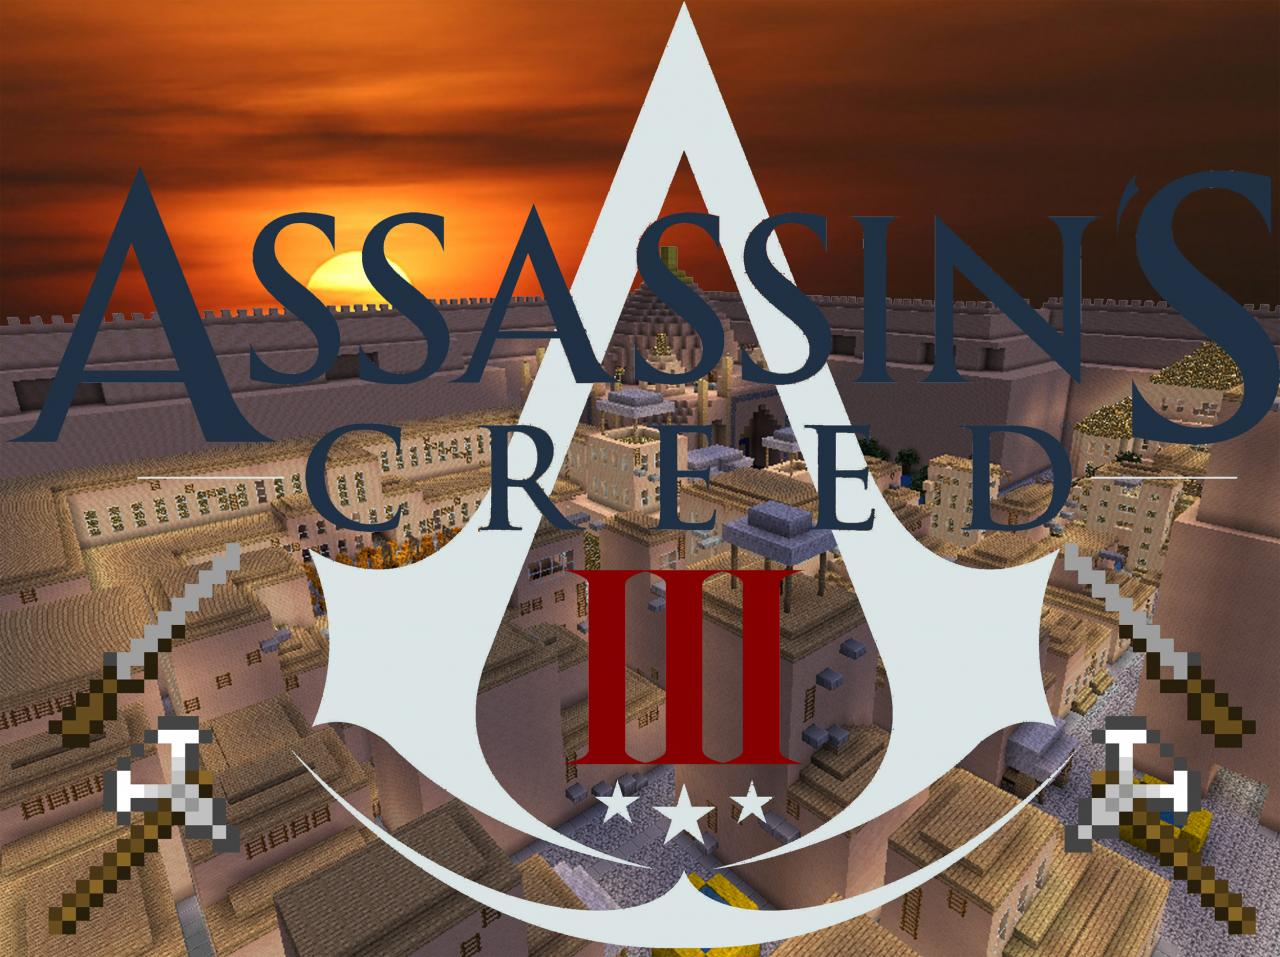 http://img.niceminecraft.net/TexturePack/Assassins-creed-3-texture-pack.jpg